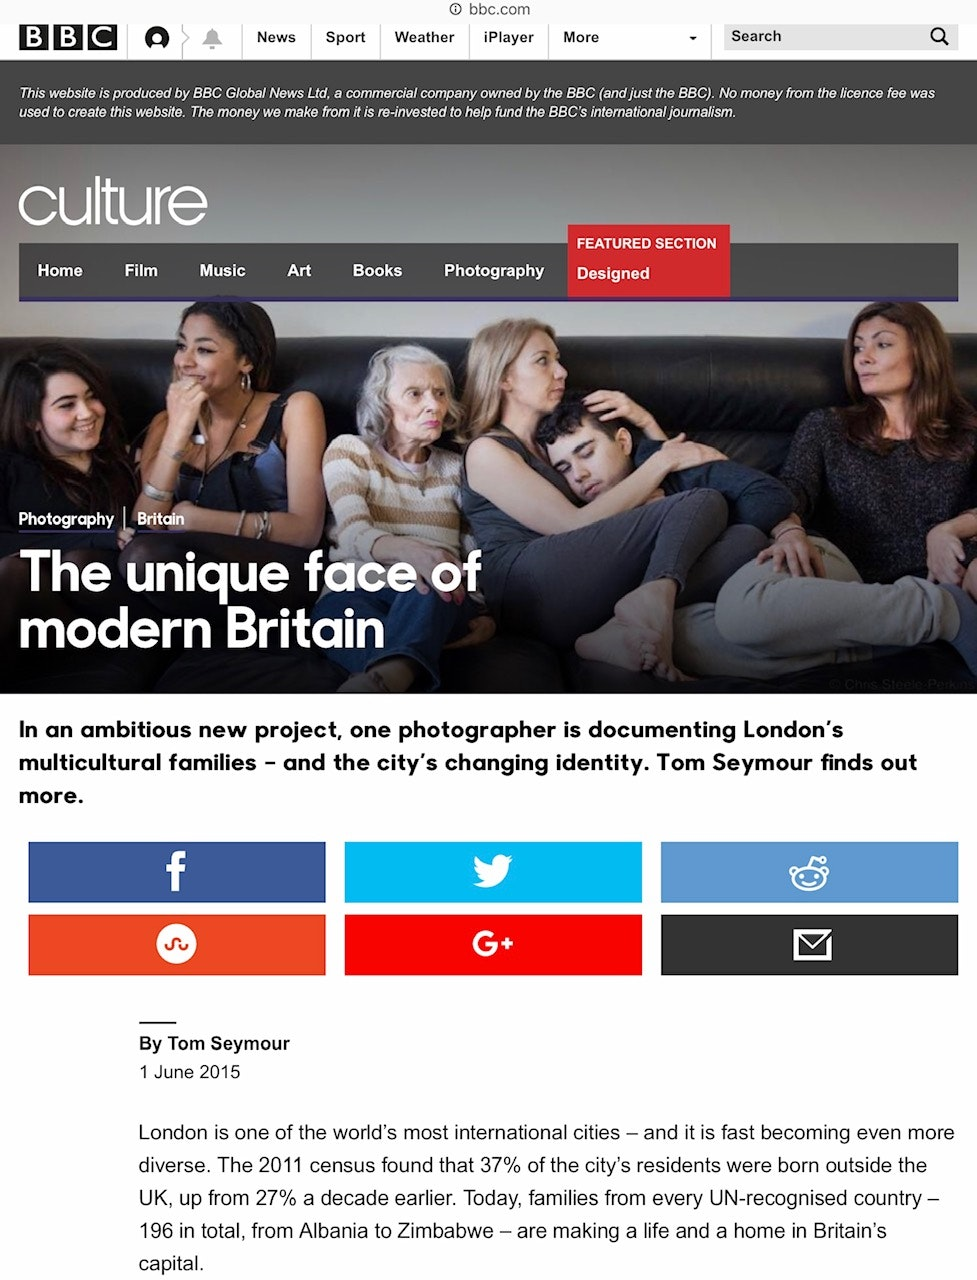 The New Londoners on the BBC